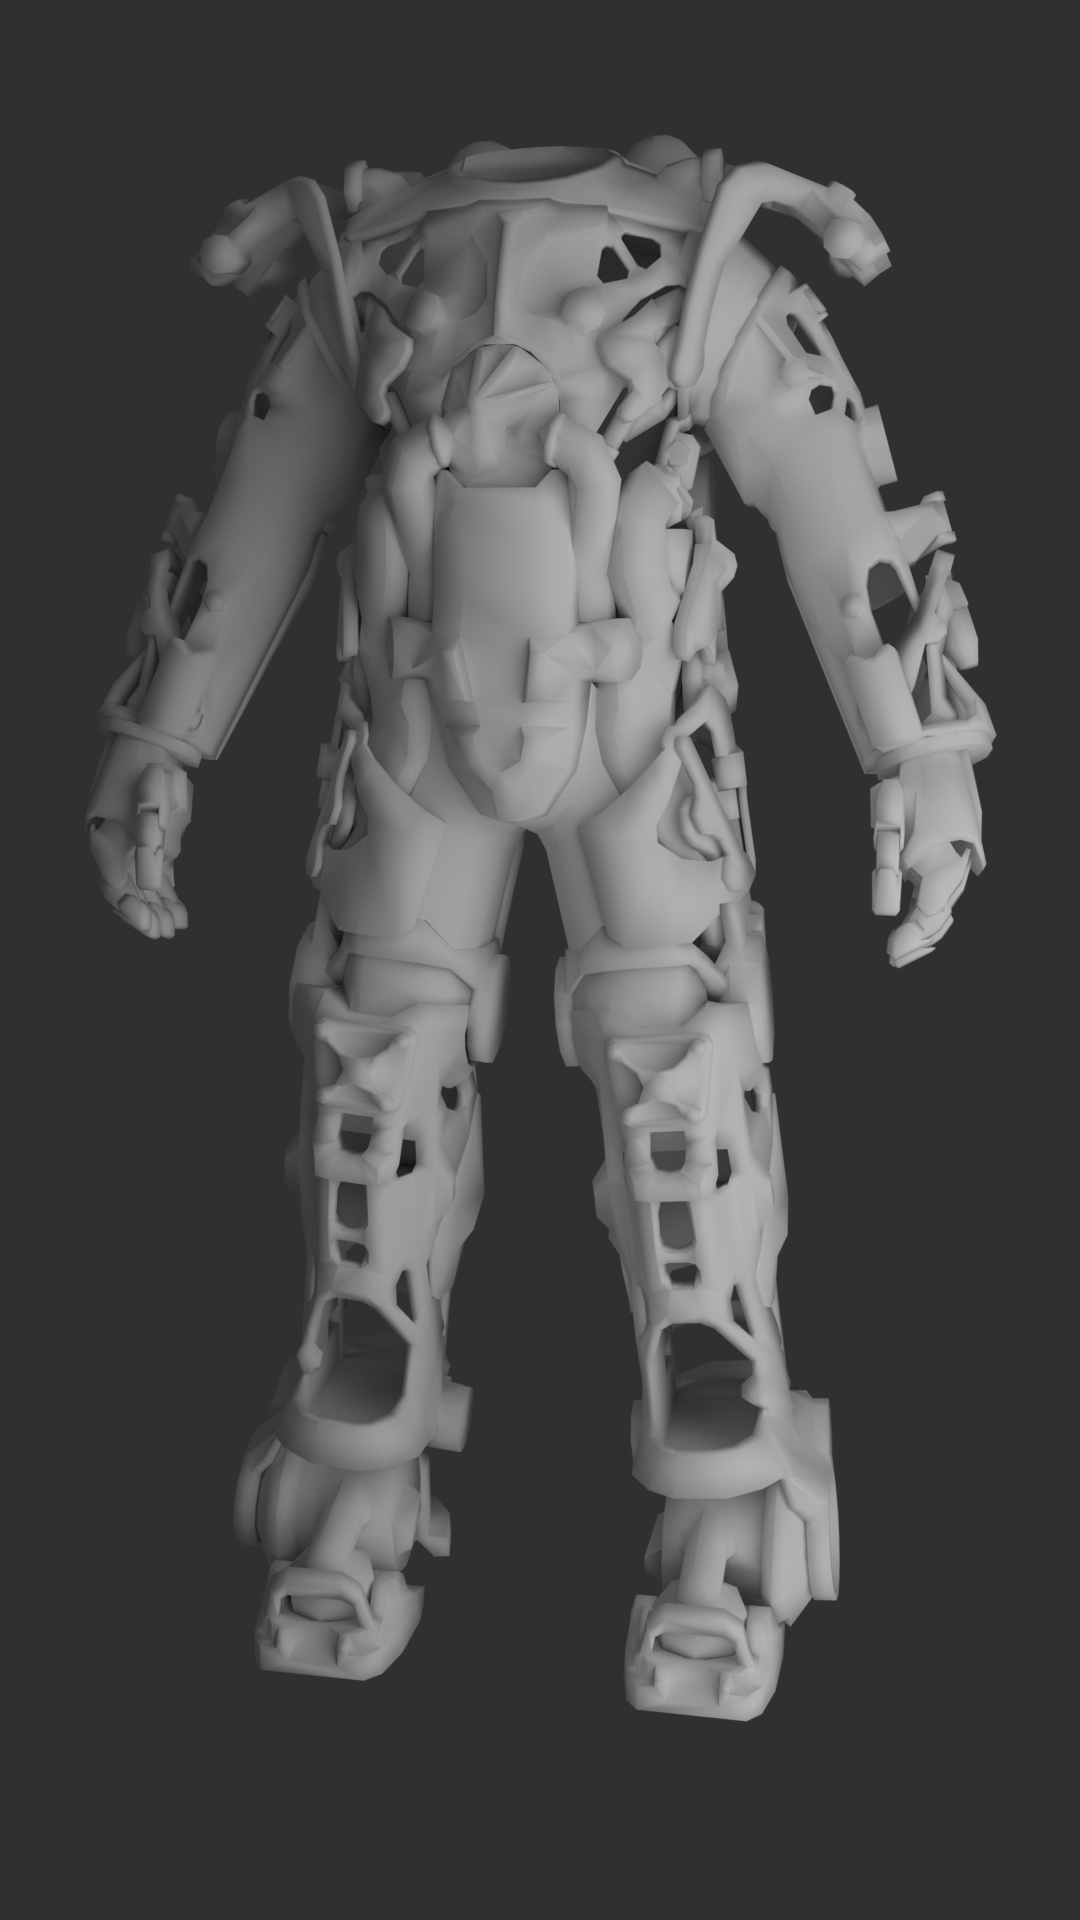 Massive 3d Printing Fallout 4 Project - Works in Progress